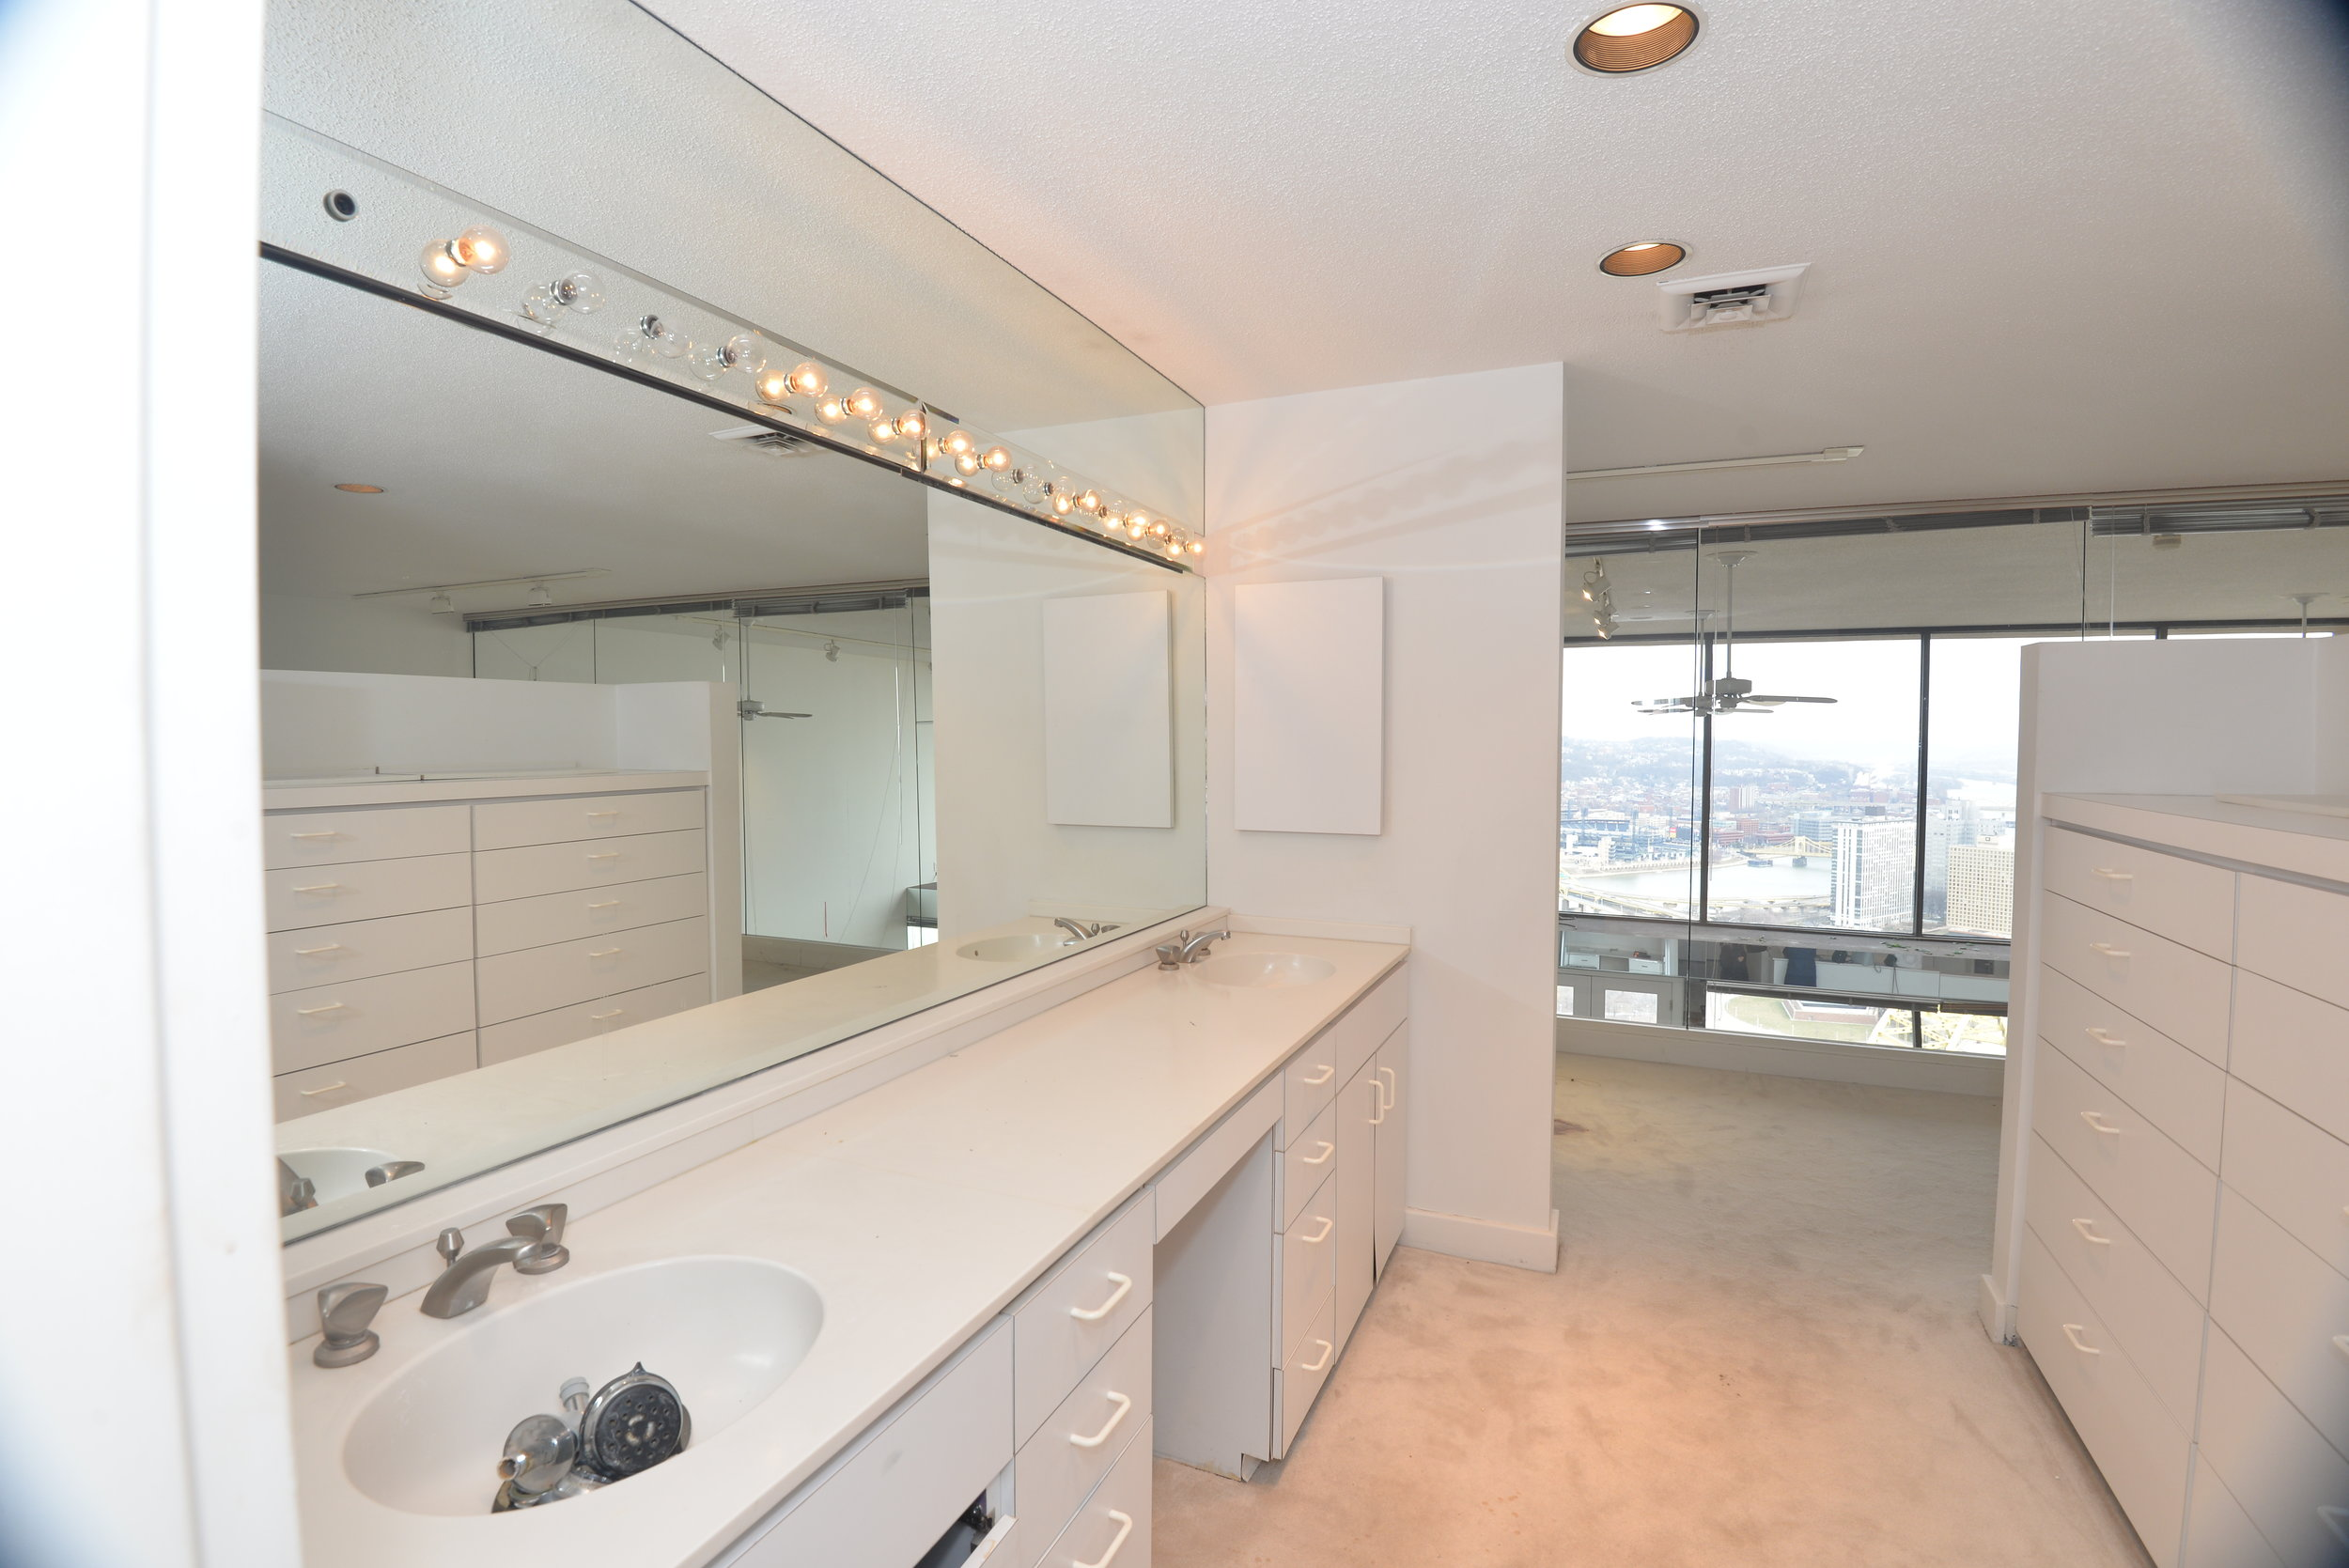 View from original vanity area. The space to the right was an island of drawers in the middle of the bedroom.